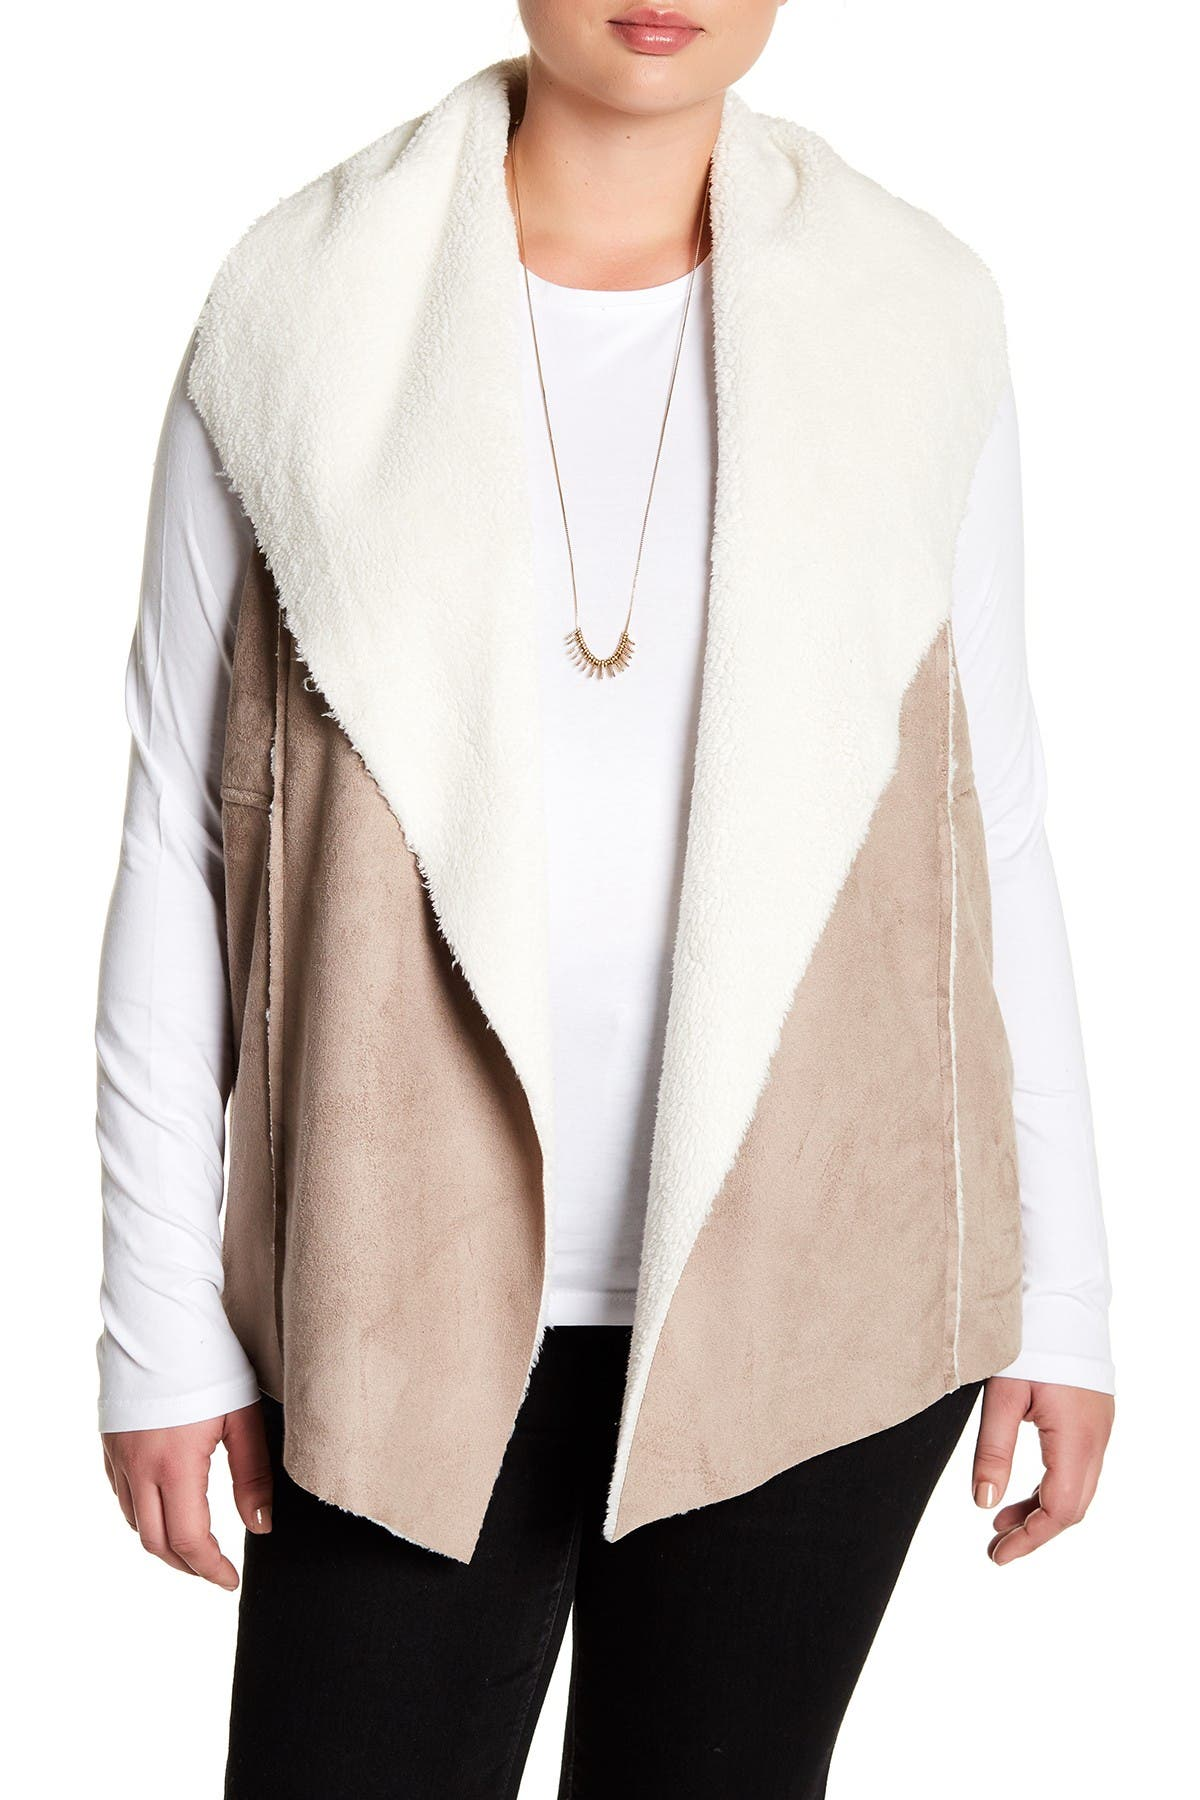 Image of Nordstrom Rack Faux Suede & Faux Shearling Lined Vest